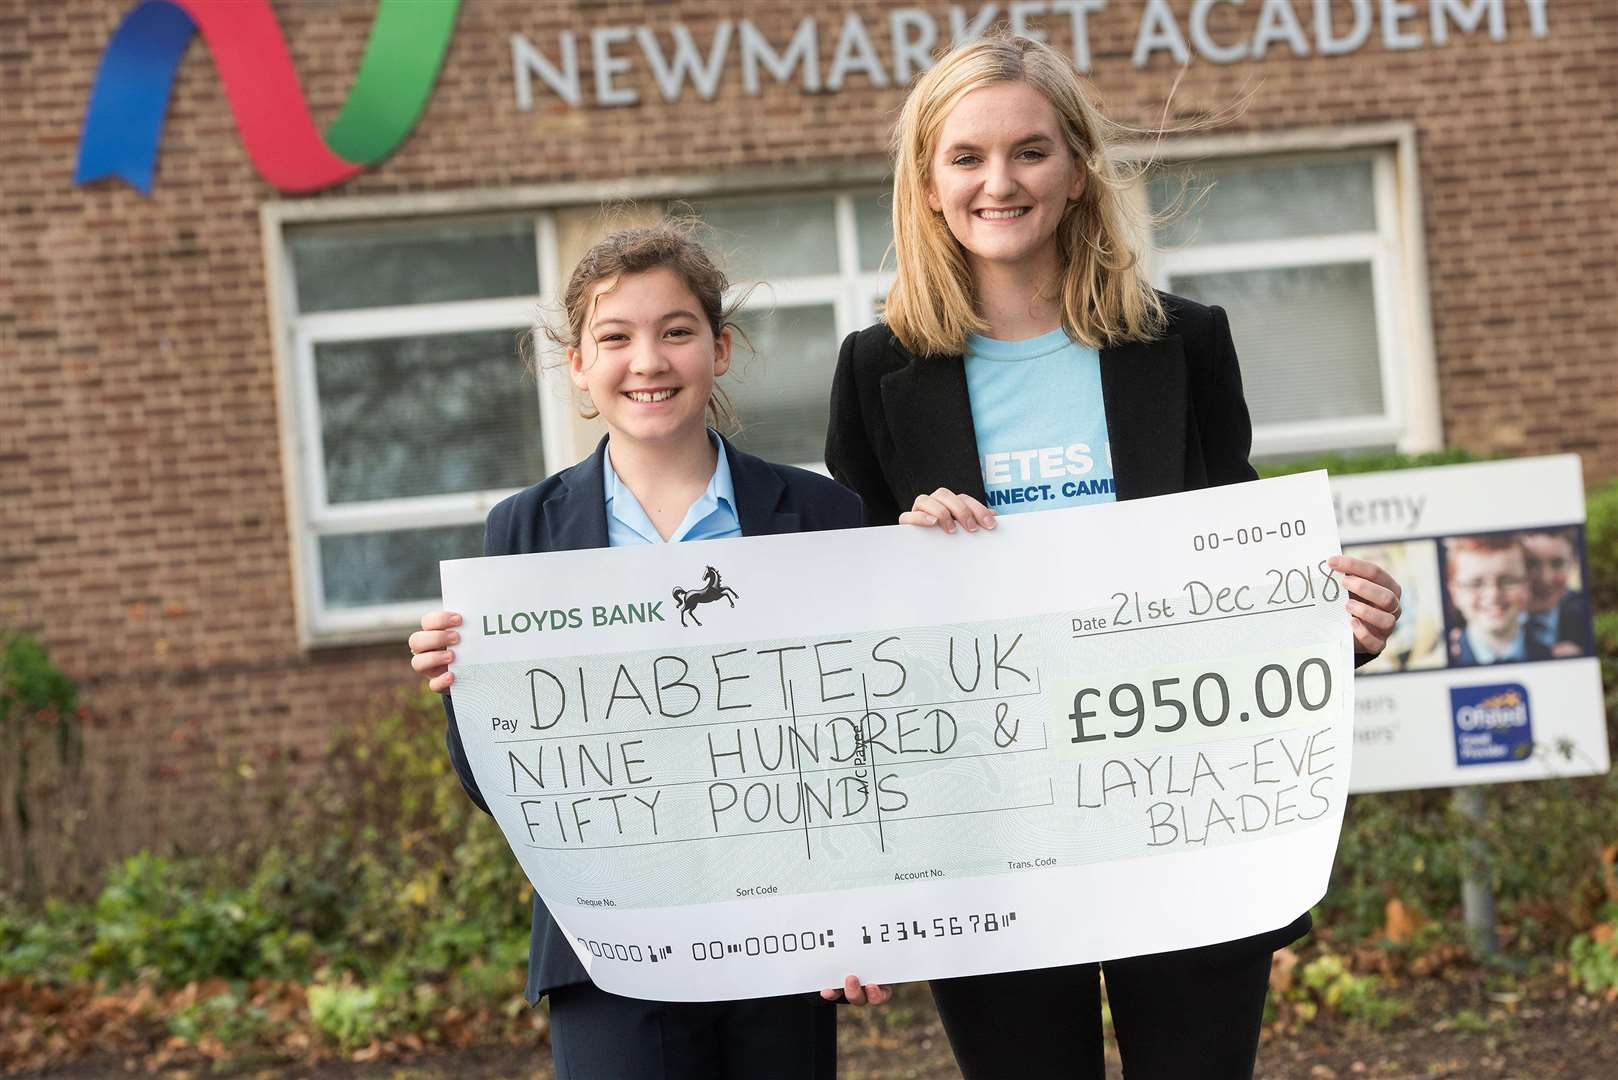 Newmarket Academy's Layla Blades presenting proceeds of a cake stall she organised to Diabetes UK volunteer Danielle Jones